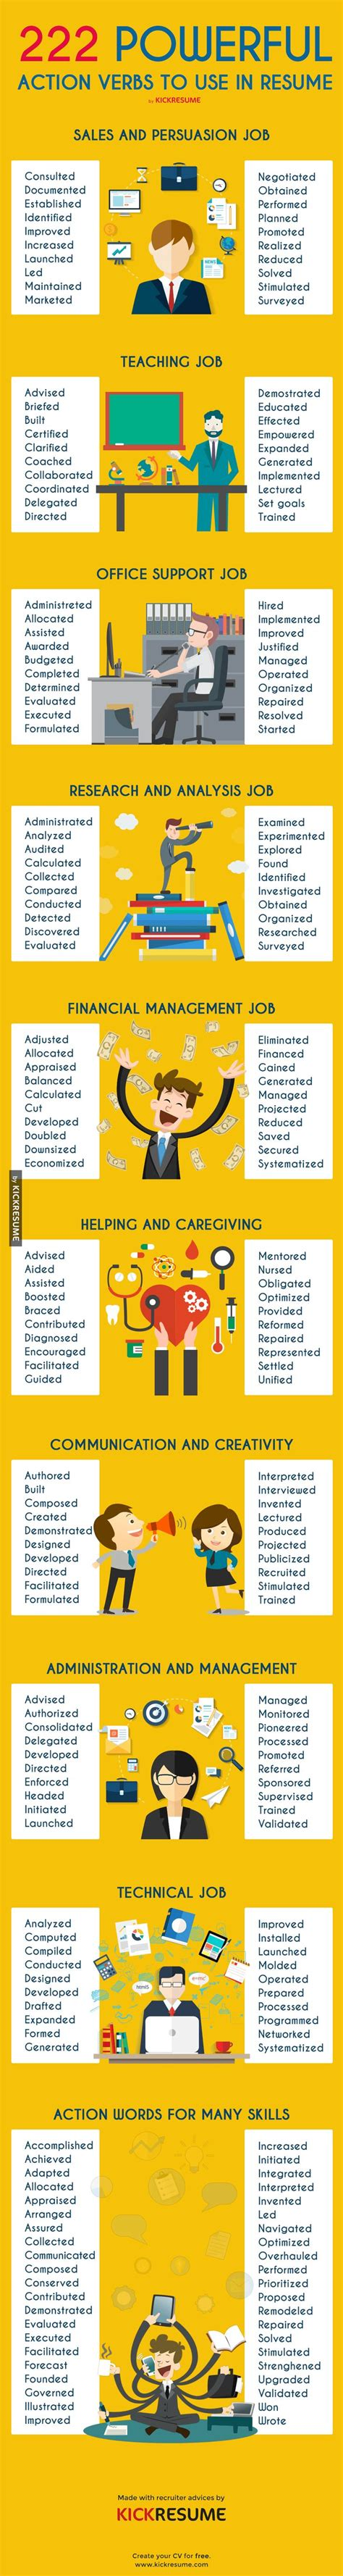 here are some good keywords to use in your your resume in your job